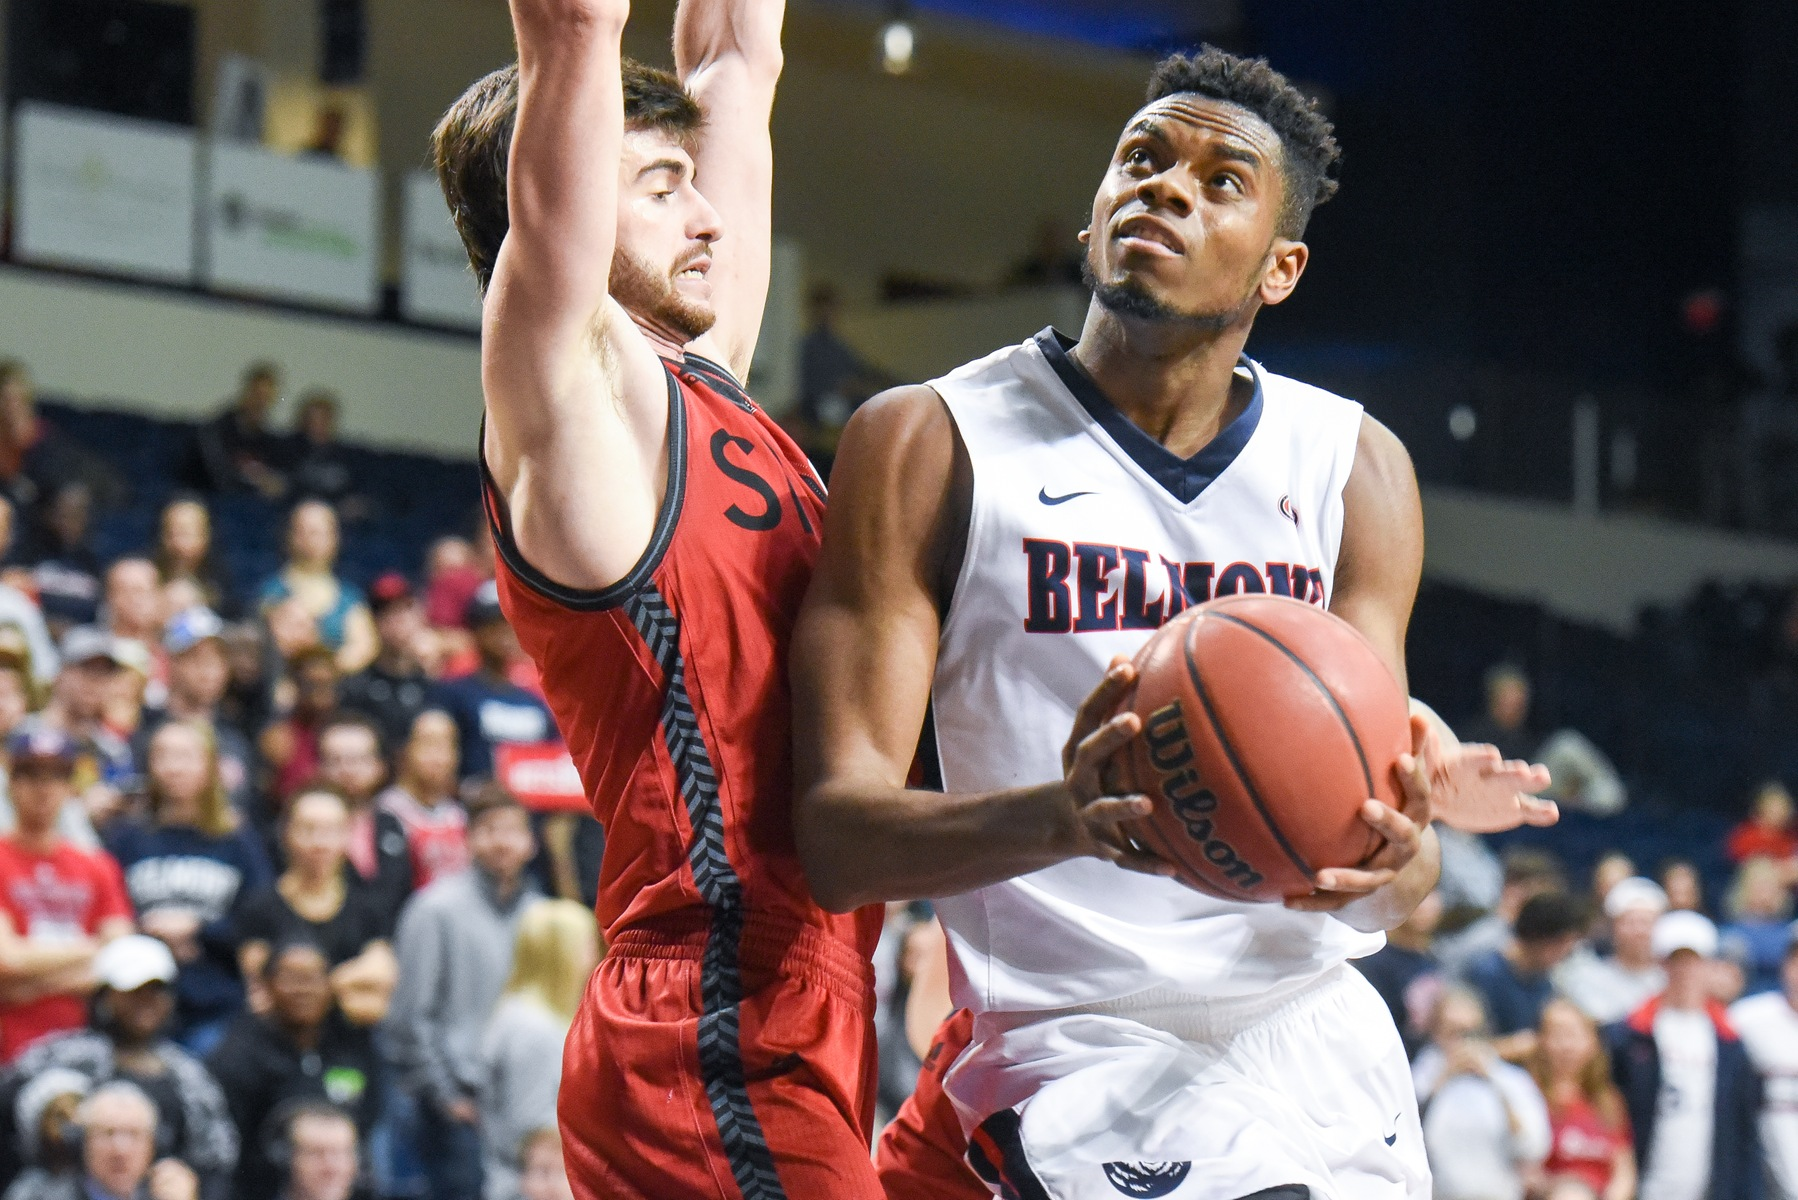 Belmont-SIU Edwardsville Game Preview